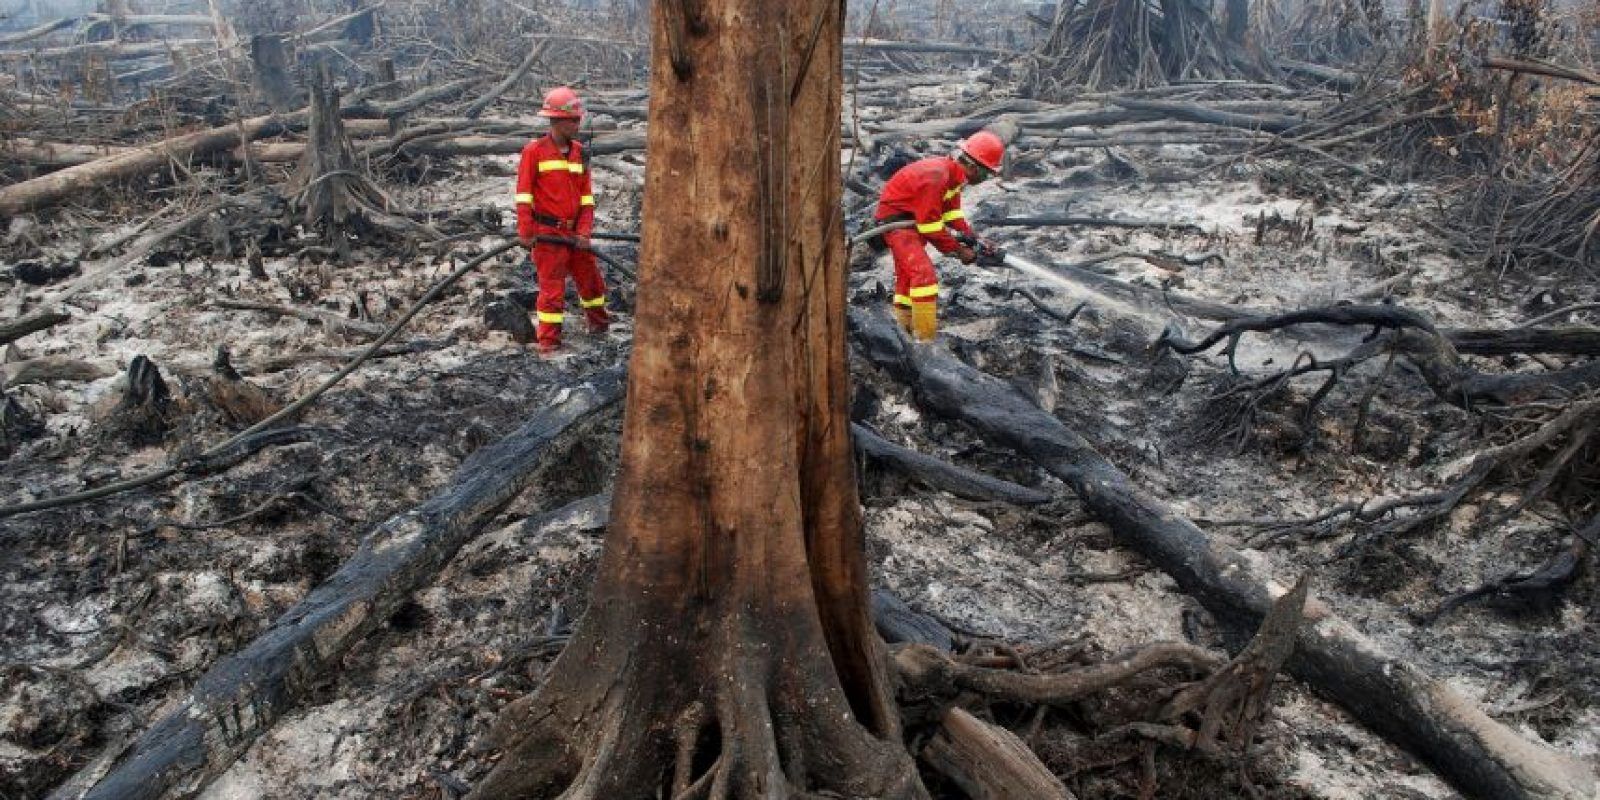 Incendio forestal en Indonesia. Foto: AFP